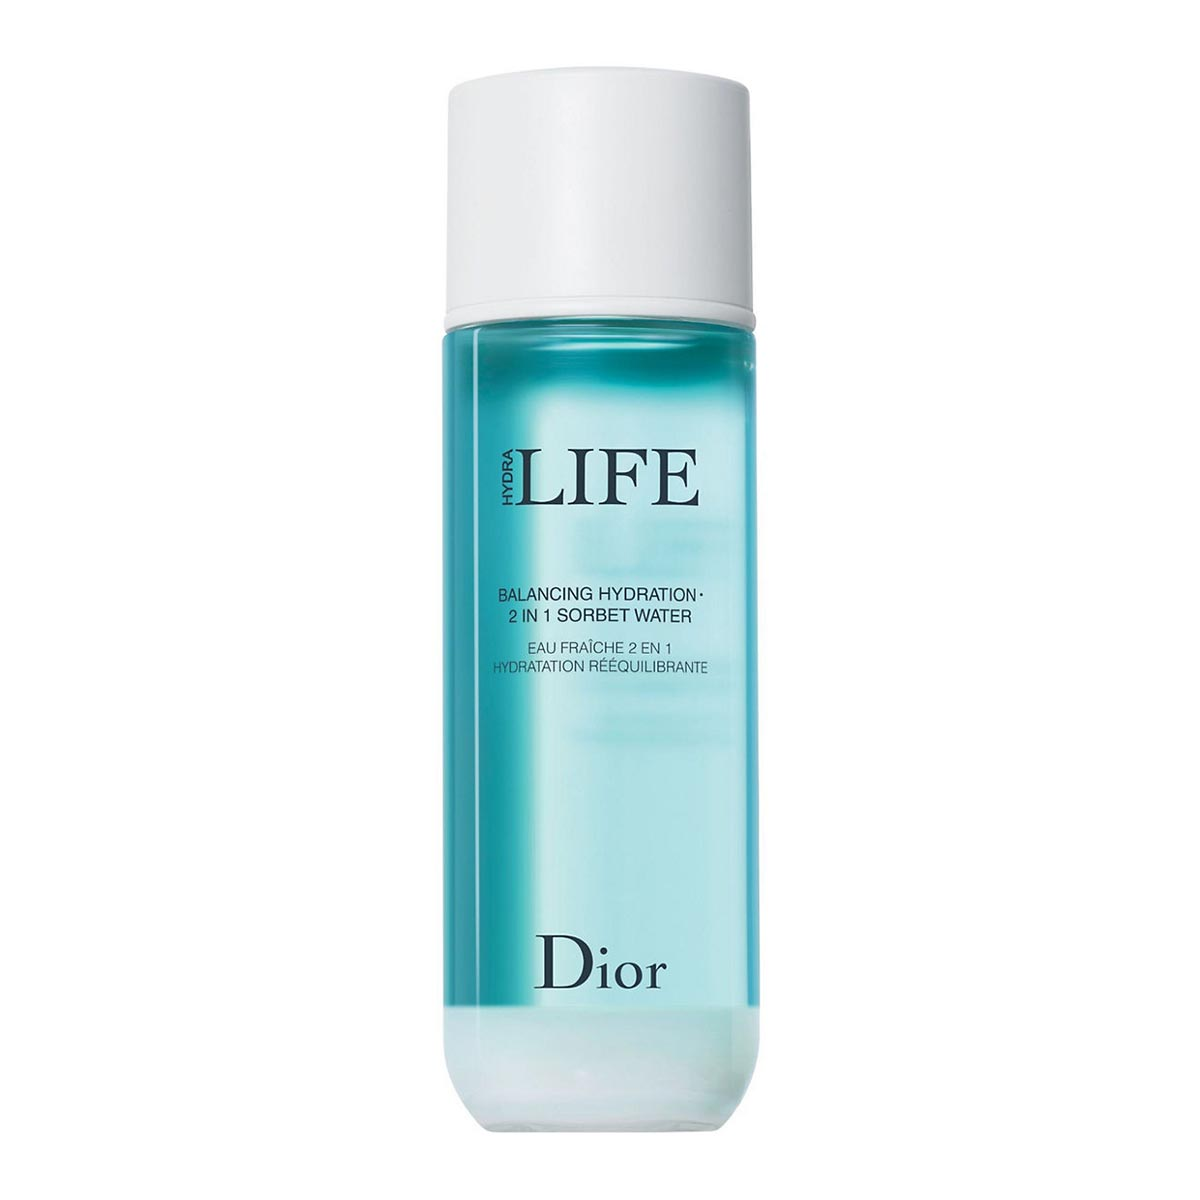 Dior hydralife balancing hydration 2 in 1 sorbet water 175ml